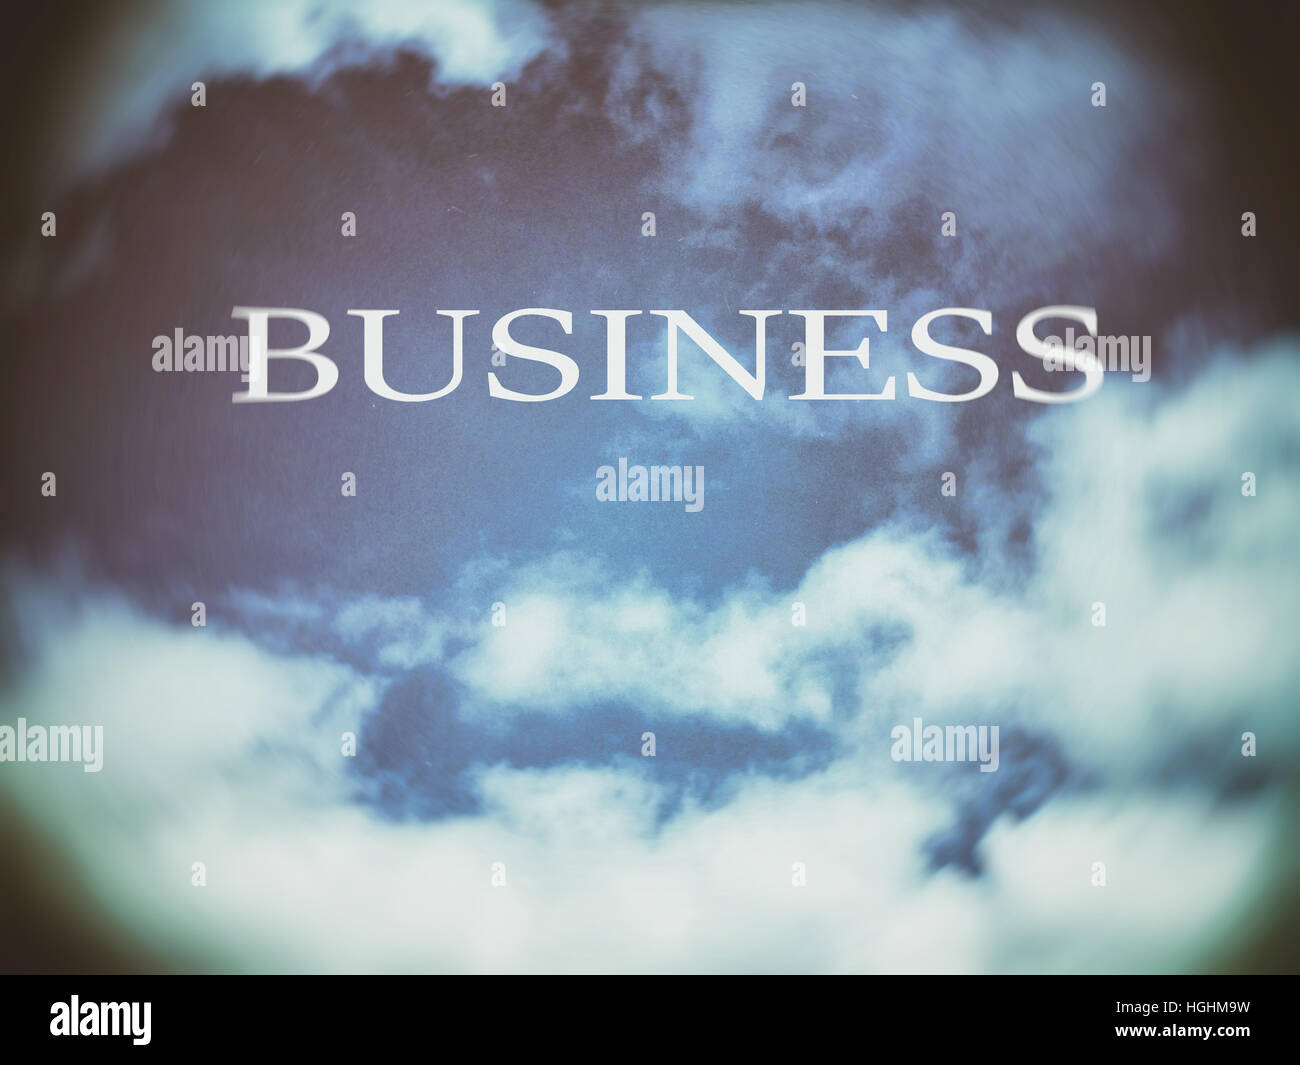 Business. Clouds. Motivation, poster, quote, illustration - Stock Image